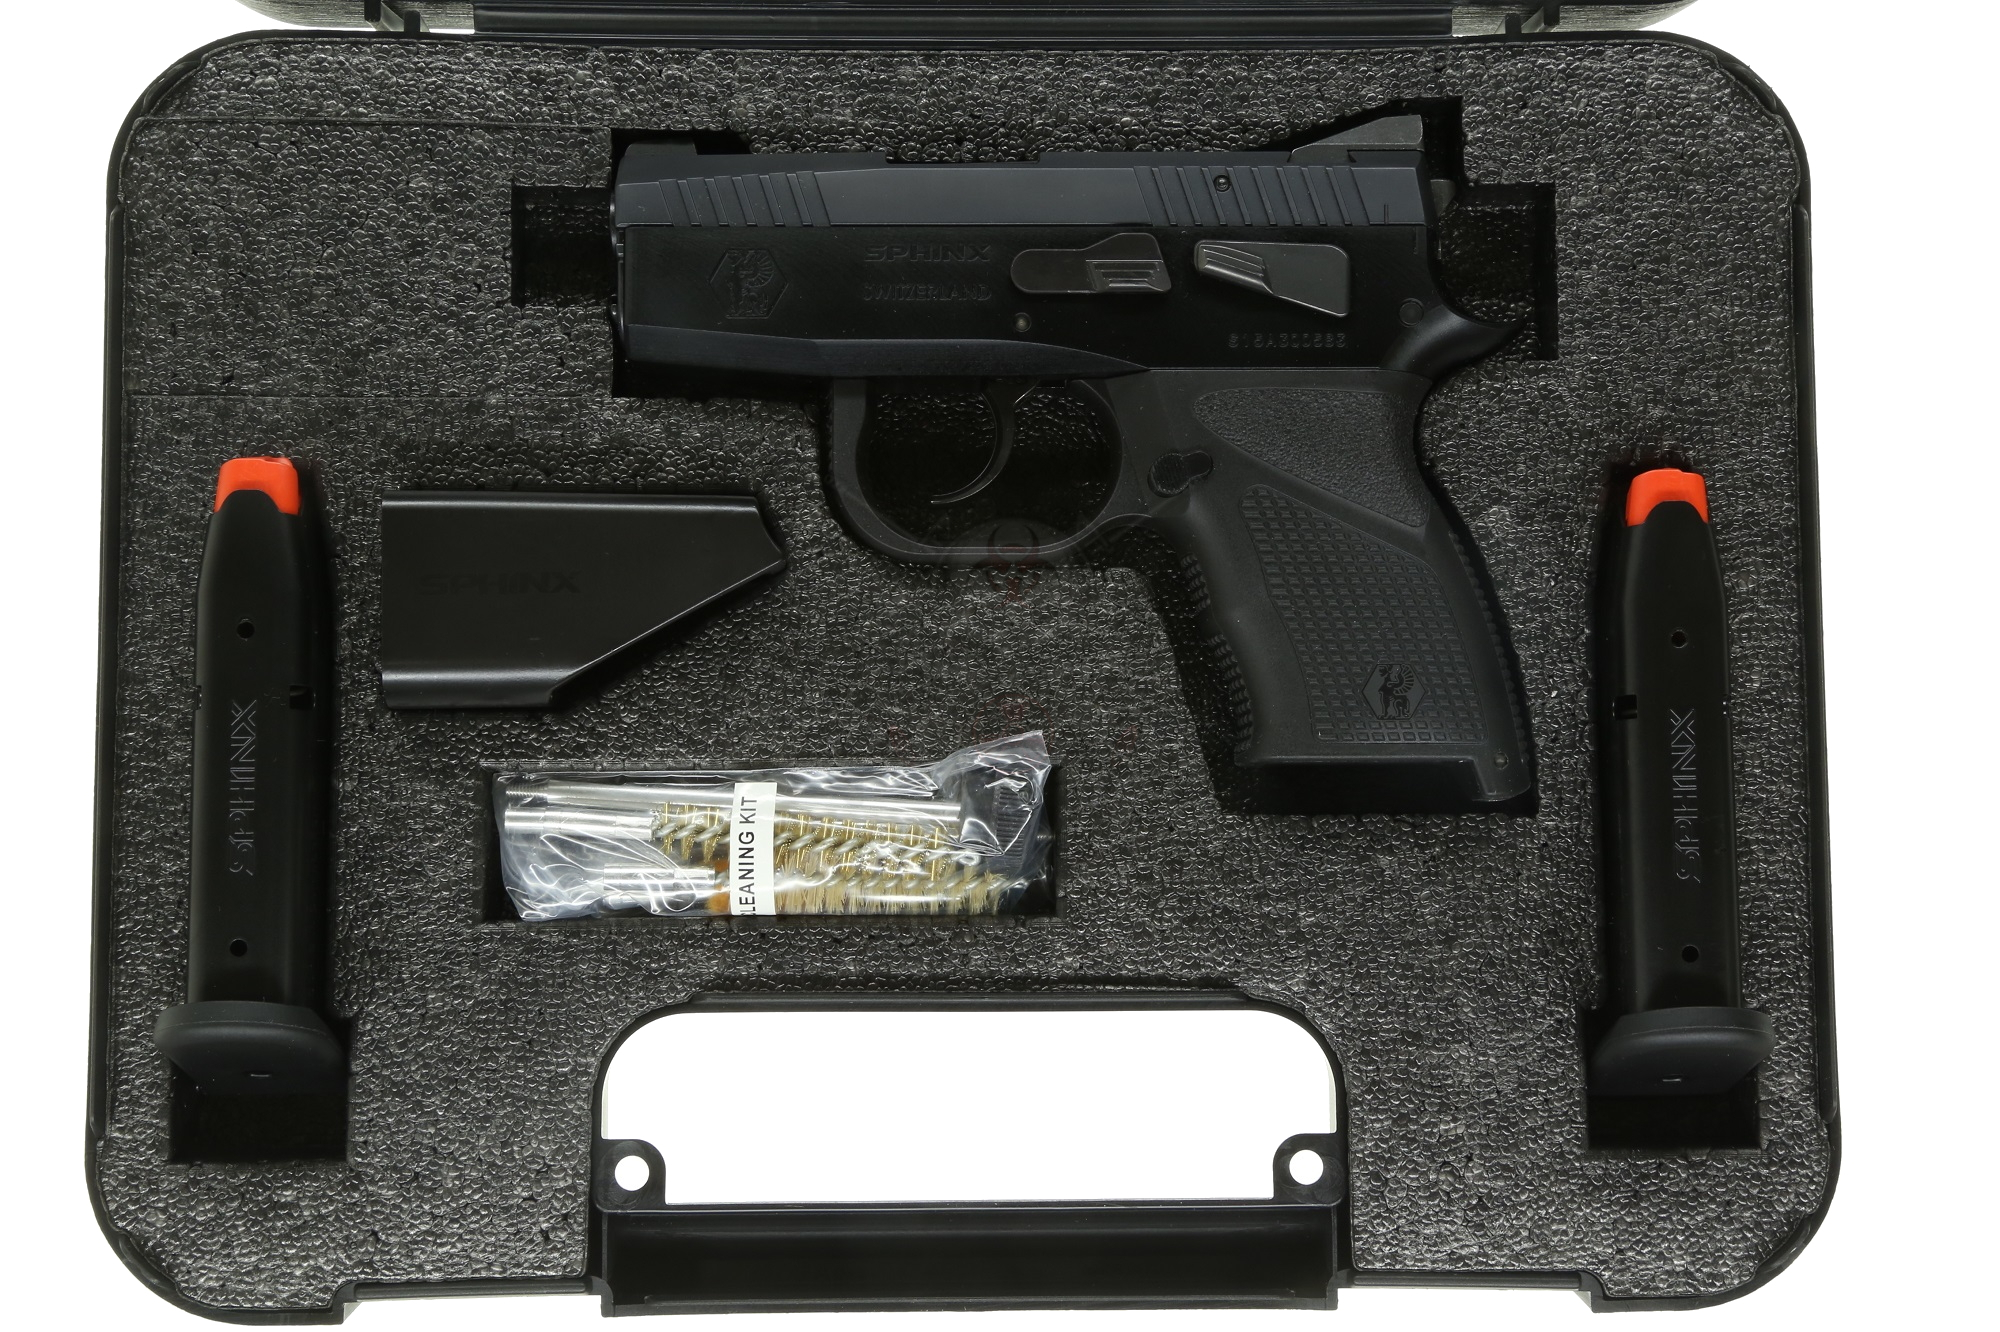 SPHINX SDP SUBCOMPACT ALPHA Black 9mm Pistol 3 13